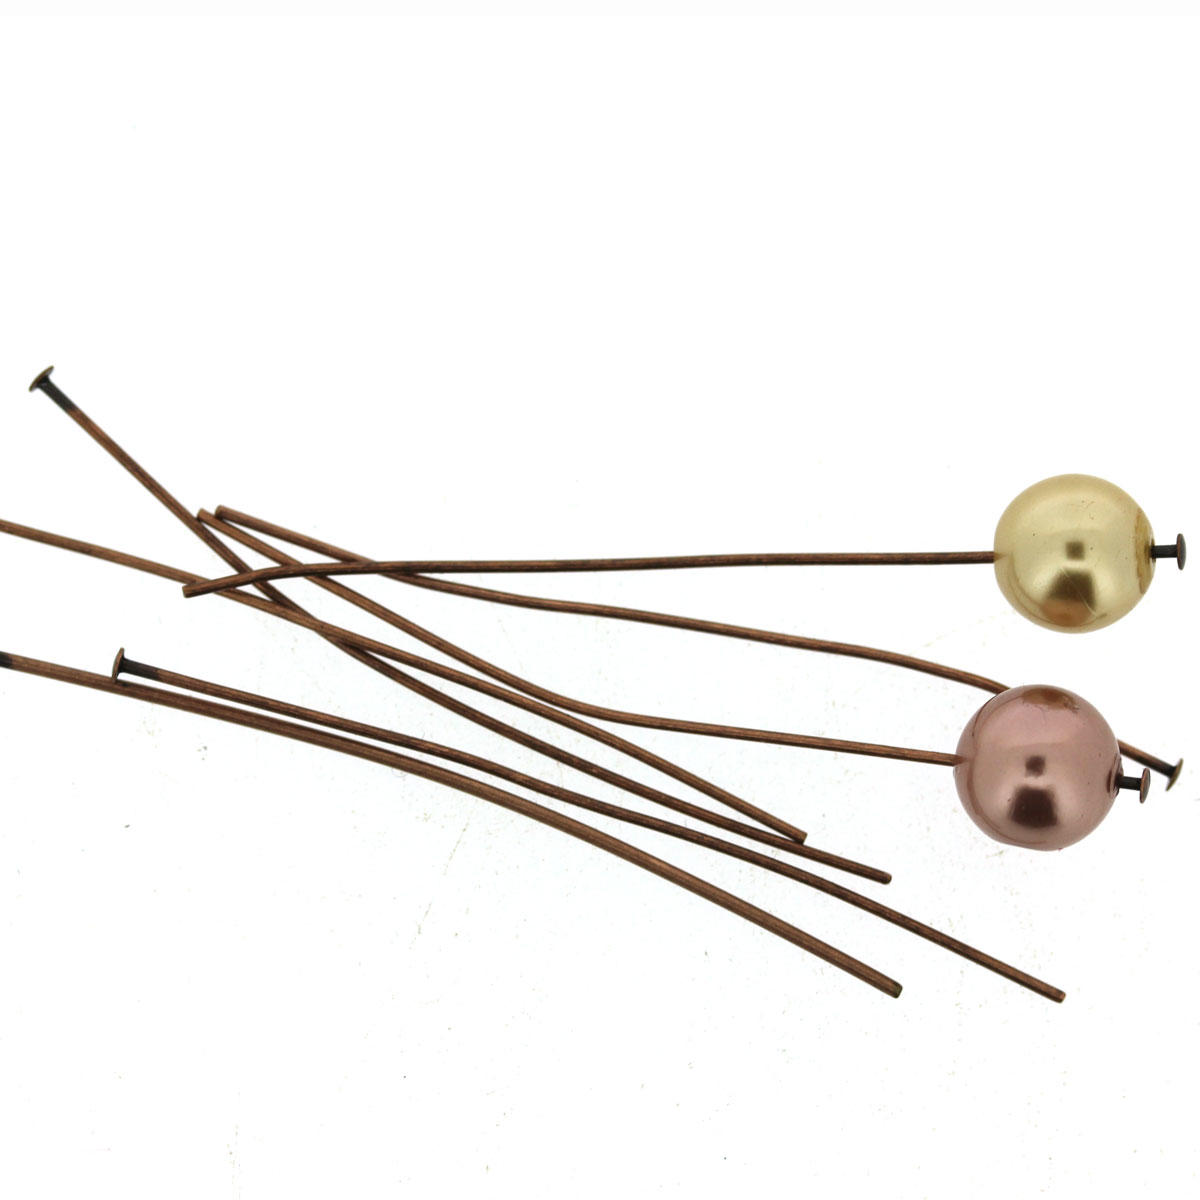 Antique Copper Thin Headpin Findings